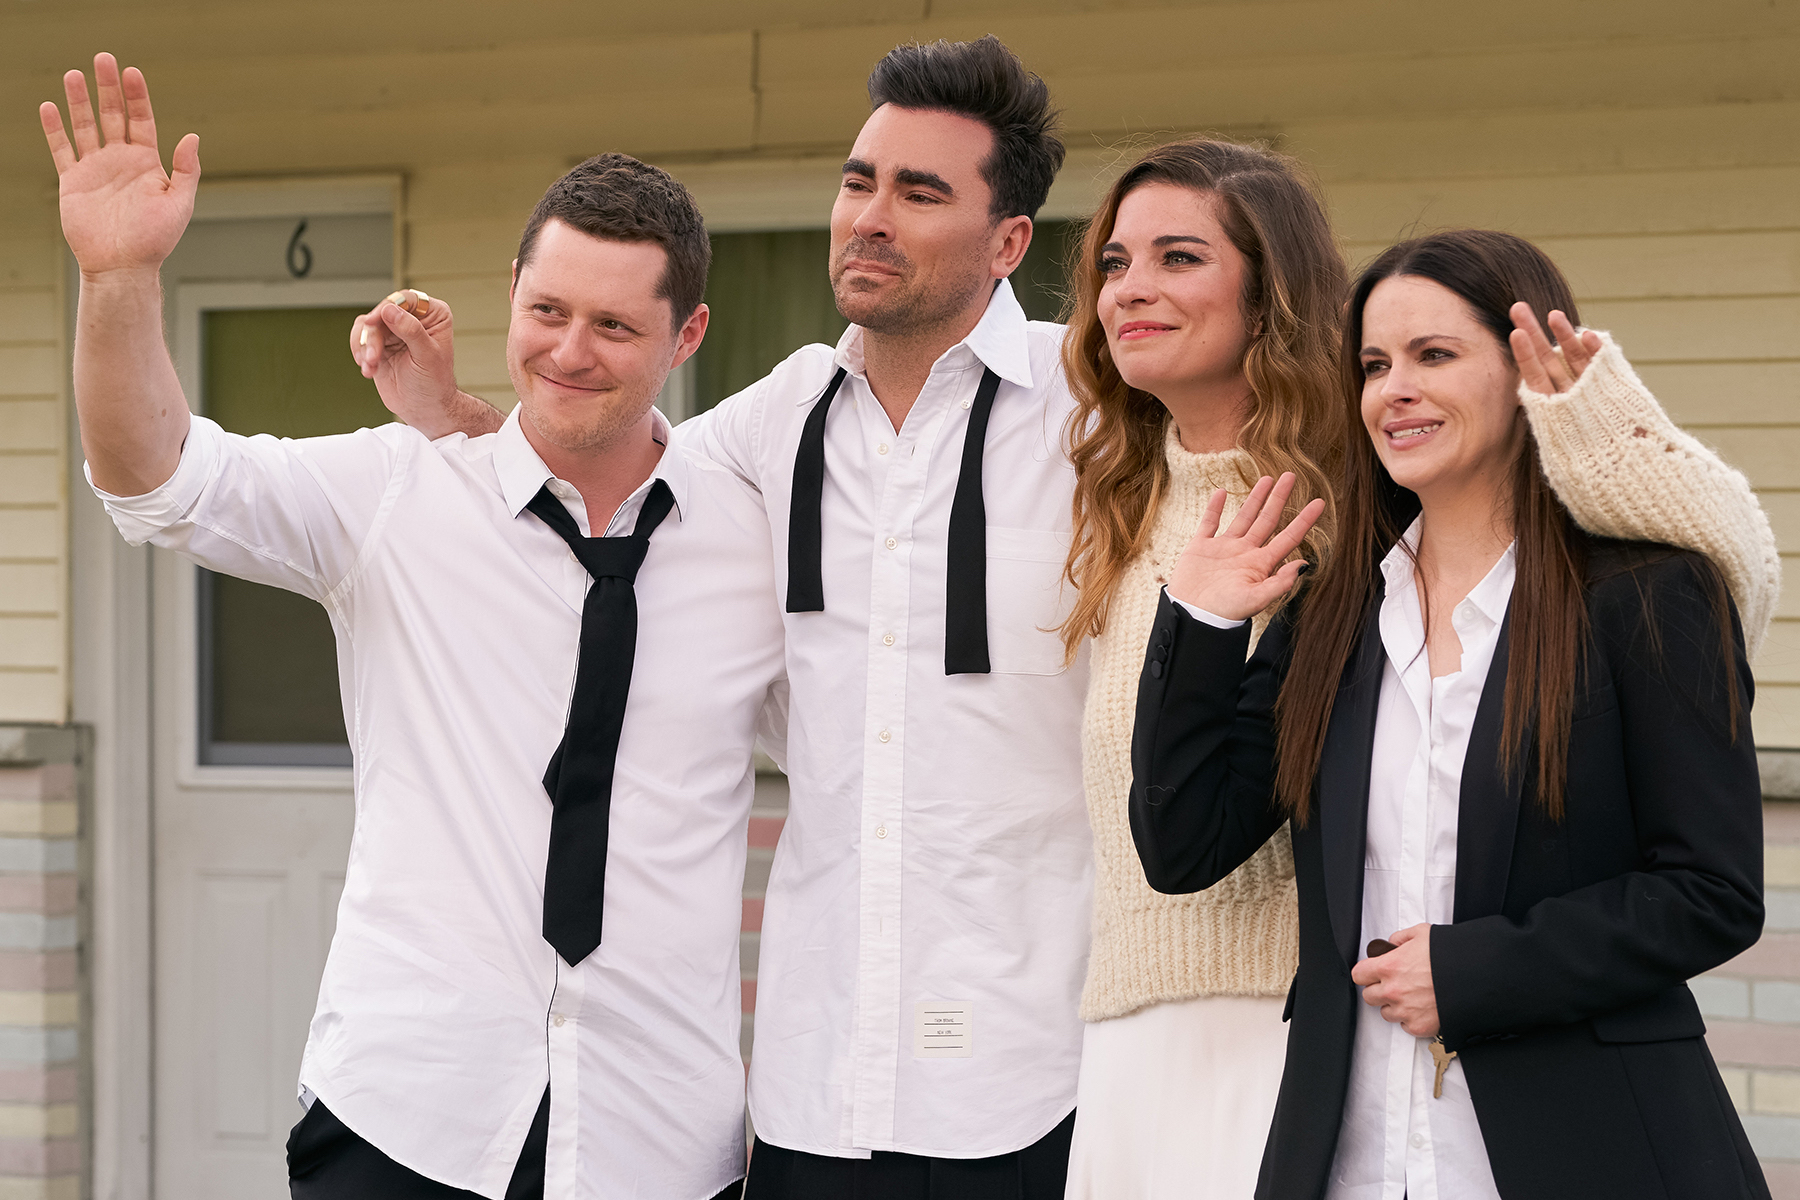 Image of characters from Schitt's Creek. (Image via Google Images)